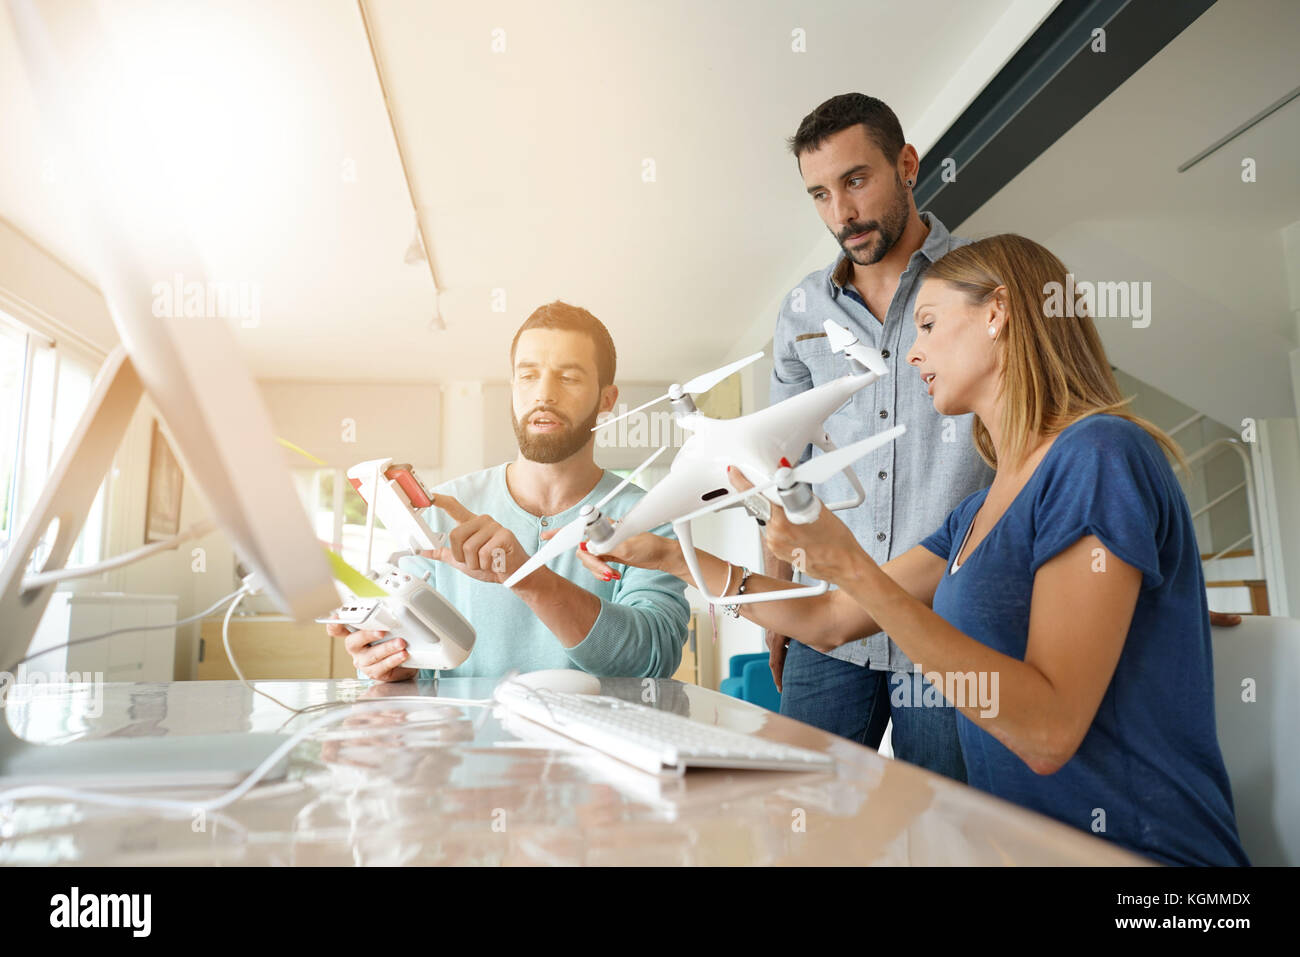 Startup people in office working on drone technology - Stock Image